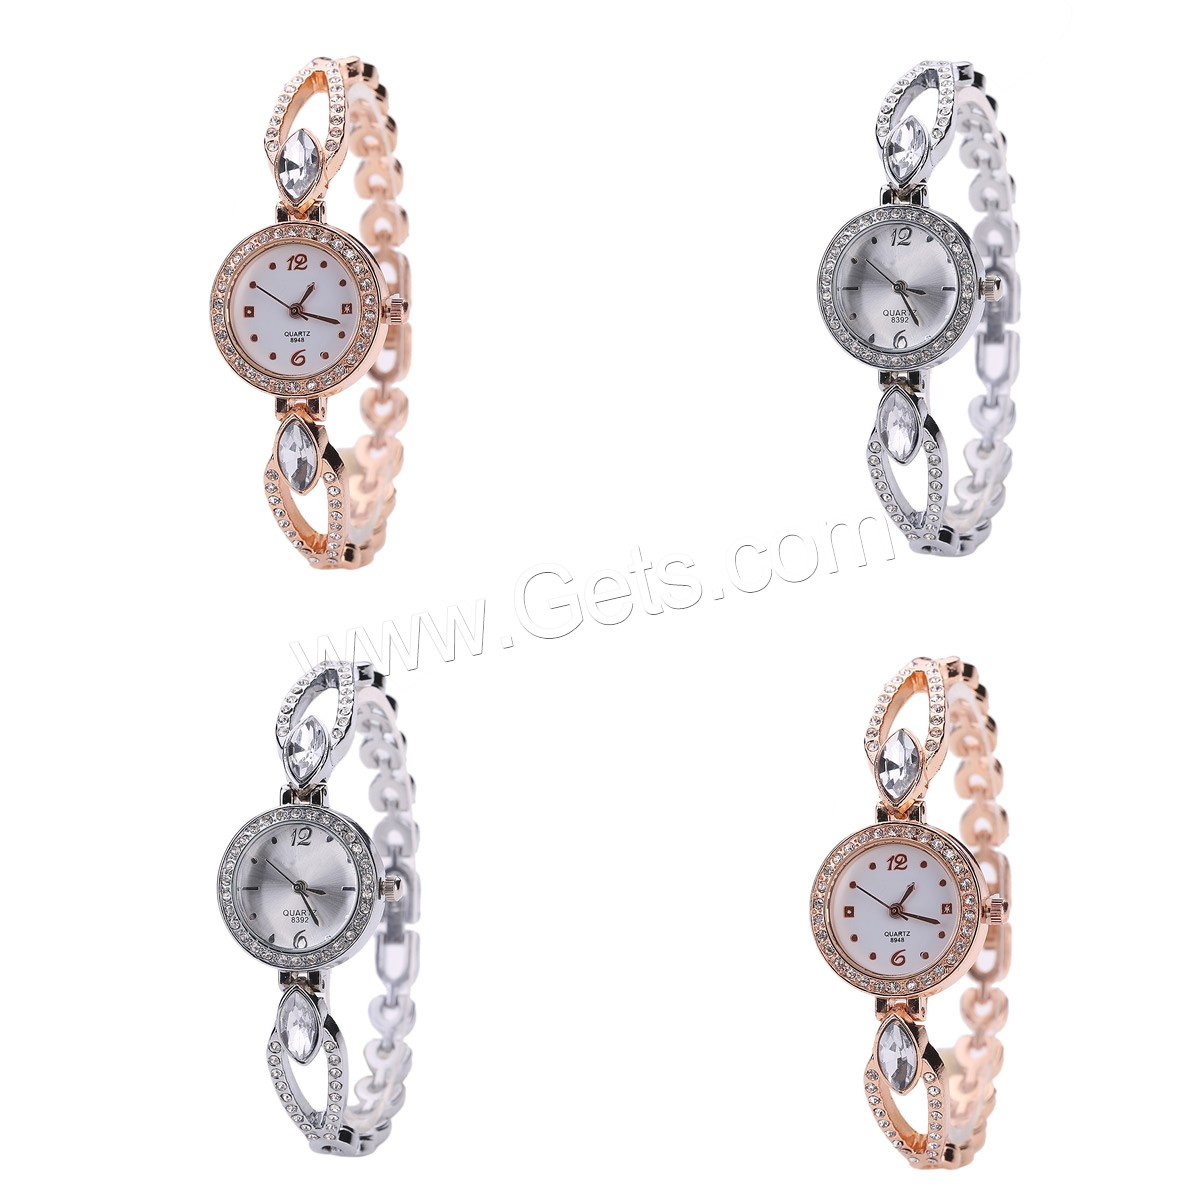 Women Wrist Watch Zinc Alloy stainless steel back geneva watch